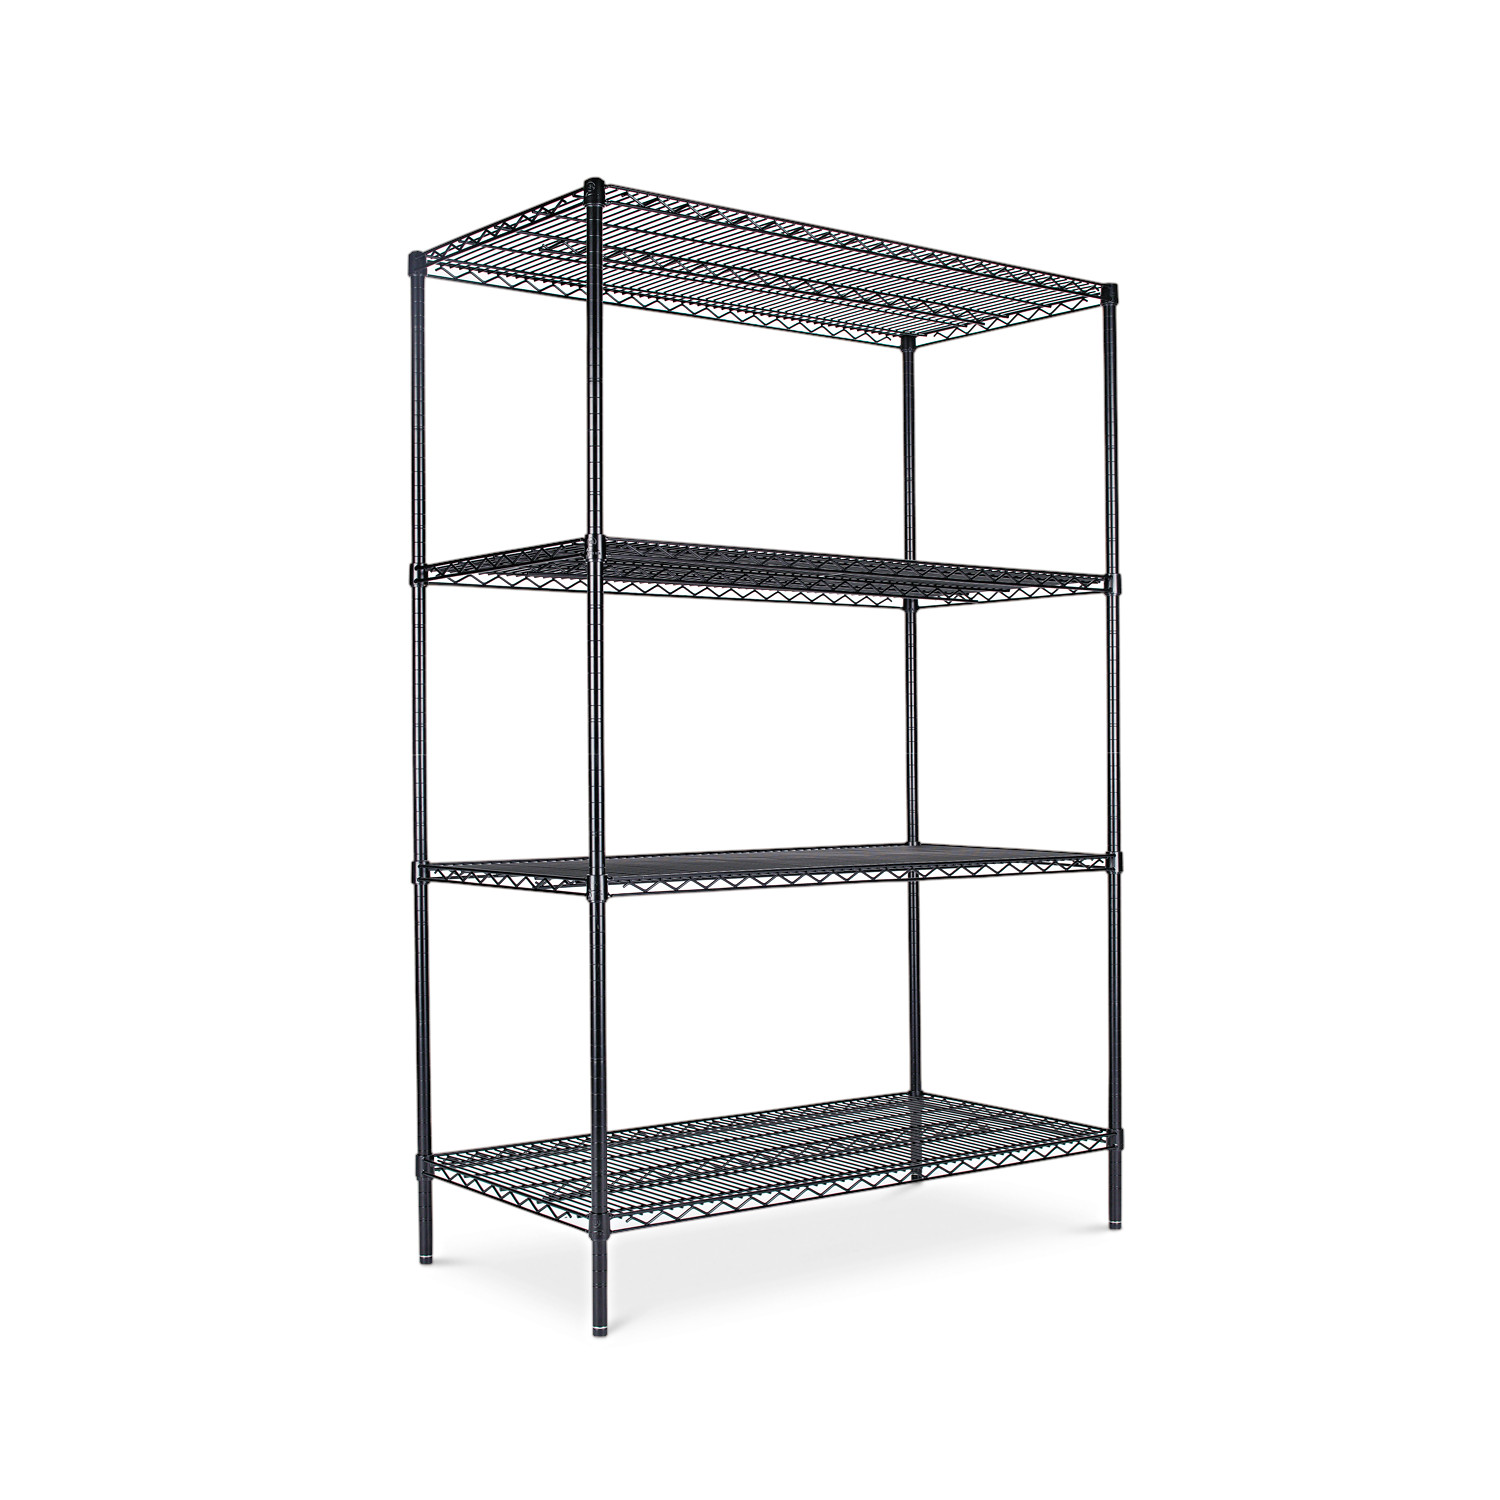 Alera Industrial Heavy-Duty Wire Shelving Starter Kit, 4-Shelf, 48w x 24d x 72h, Black by ALERA